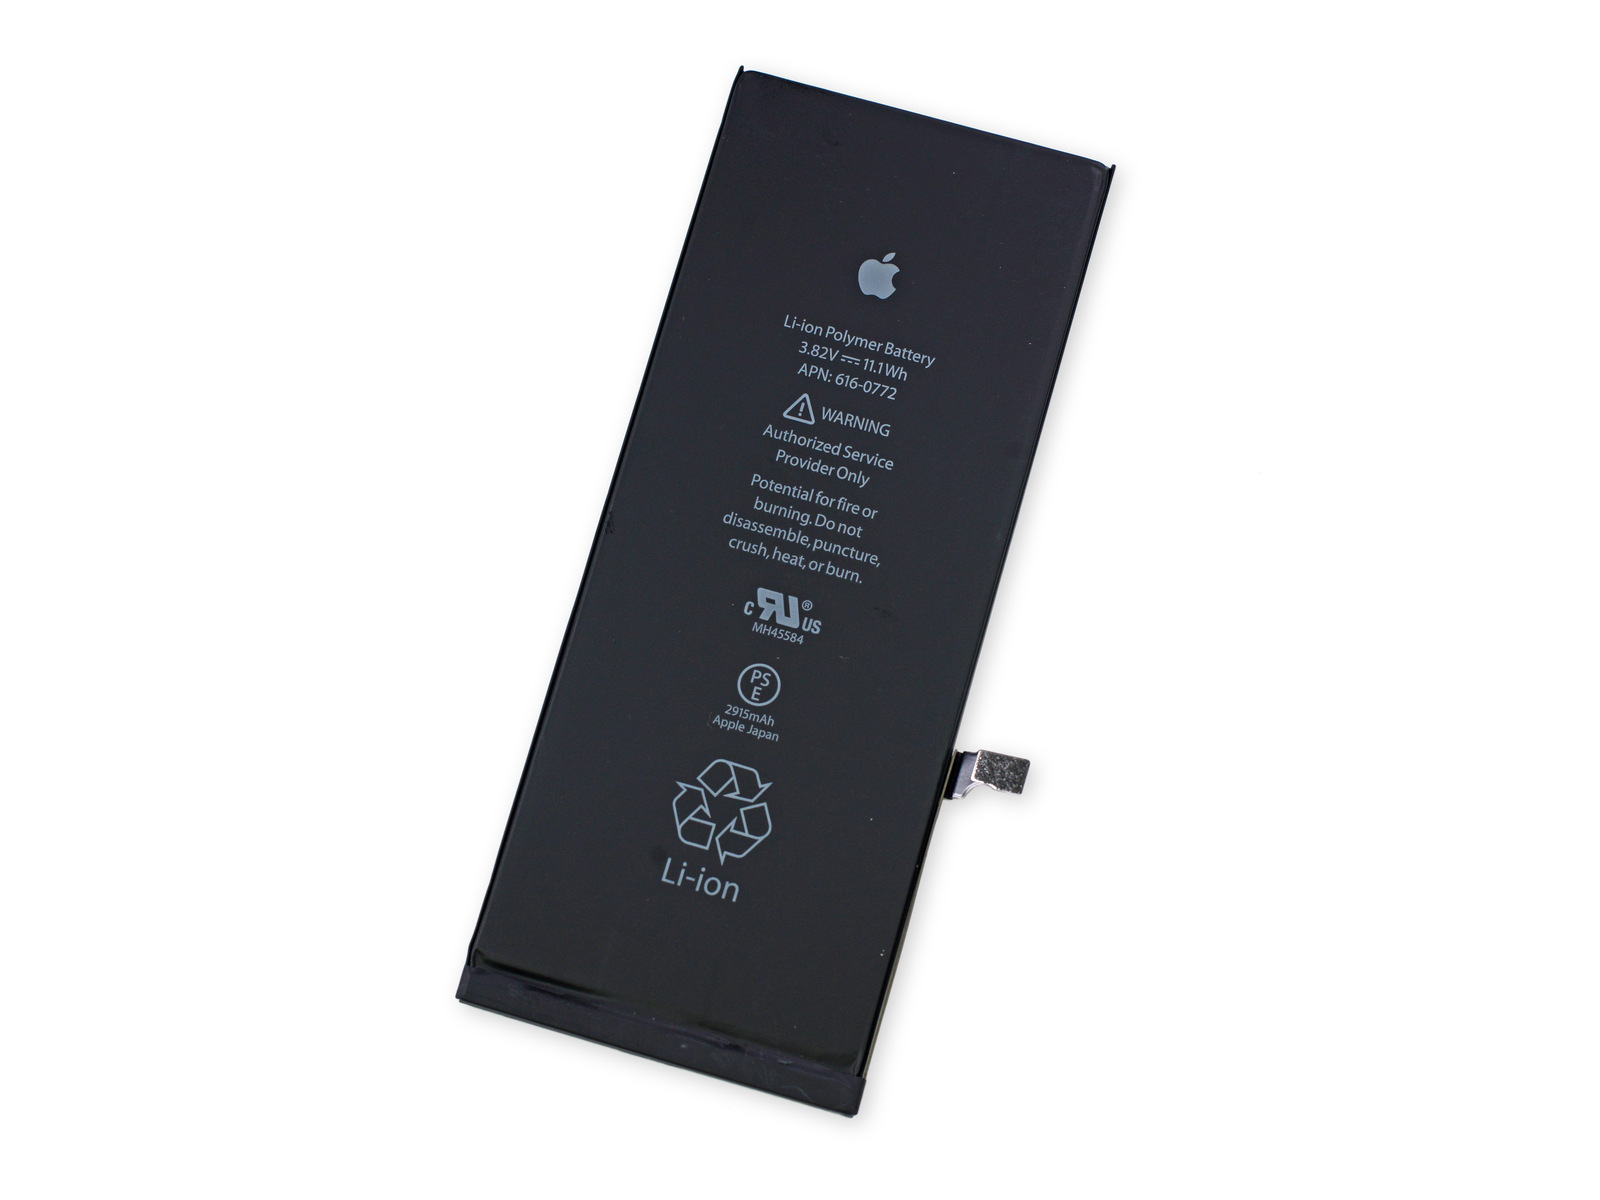 iphone6plus-battery